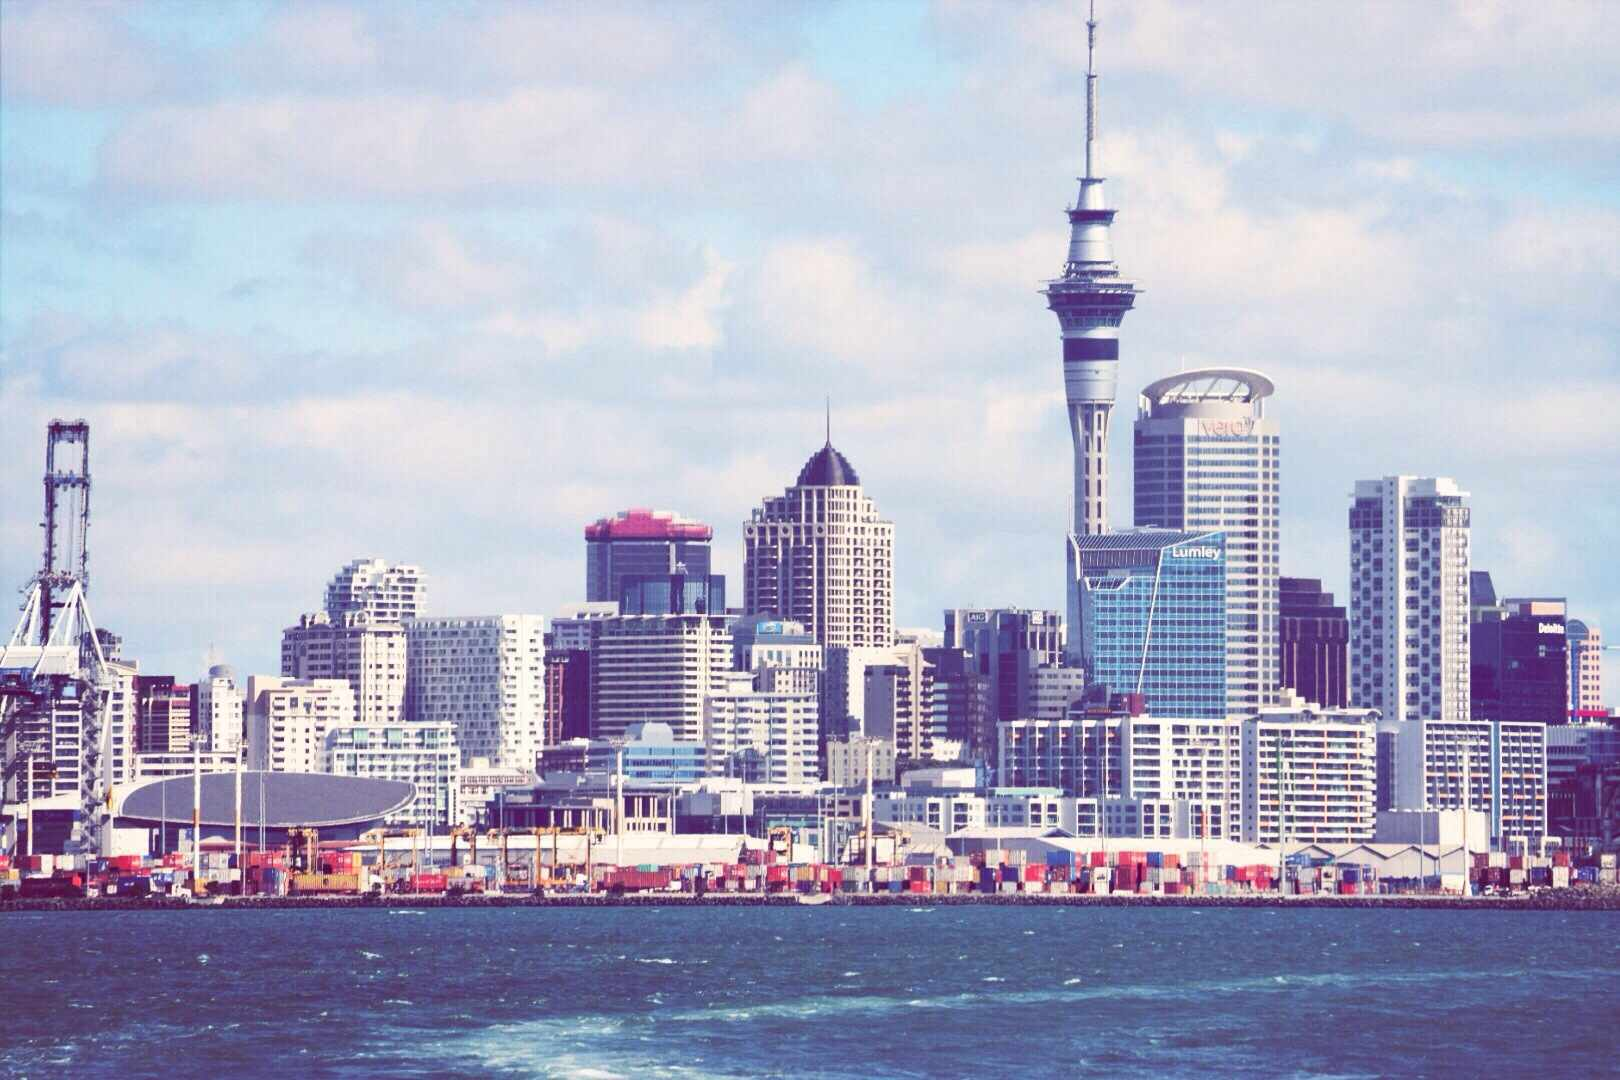 Auckland city skyline with tall buildings and pointed Skytower